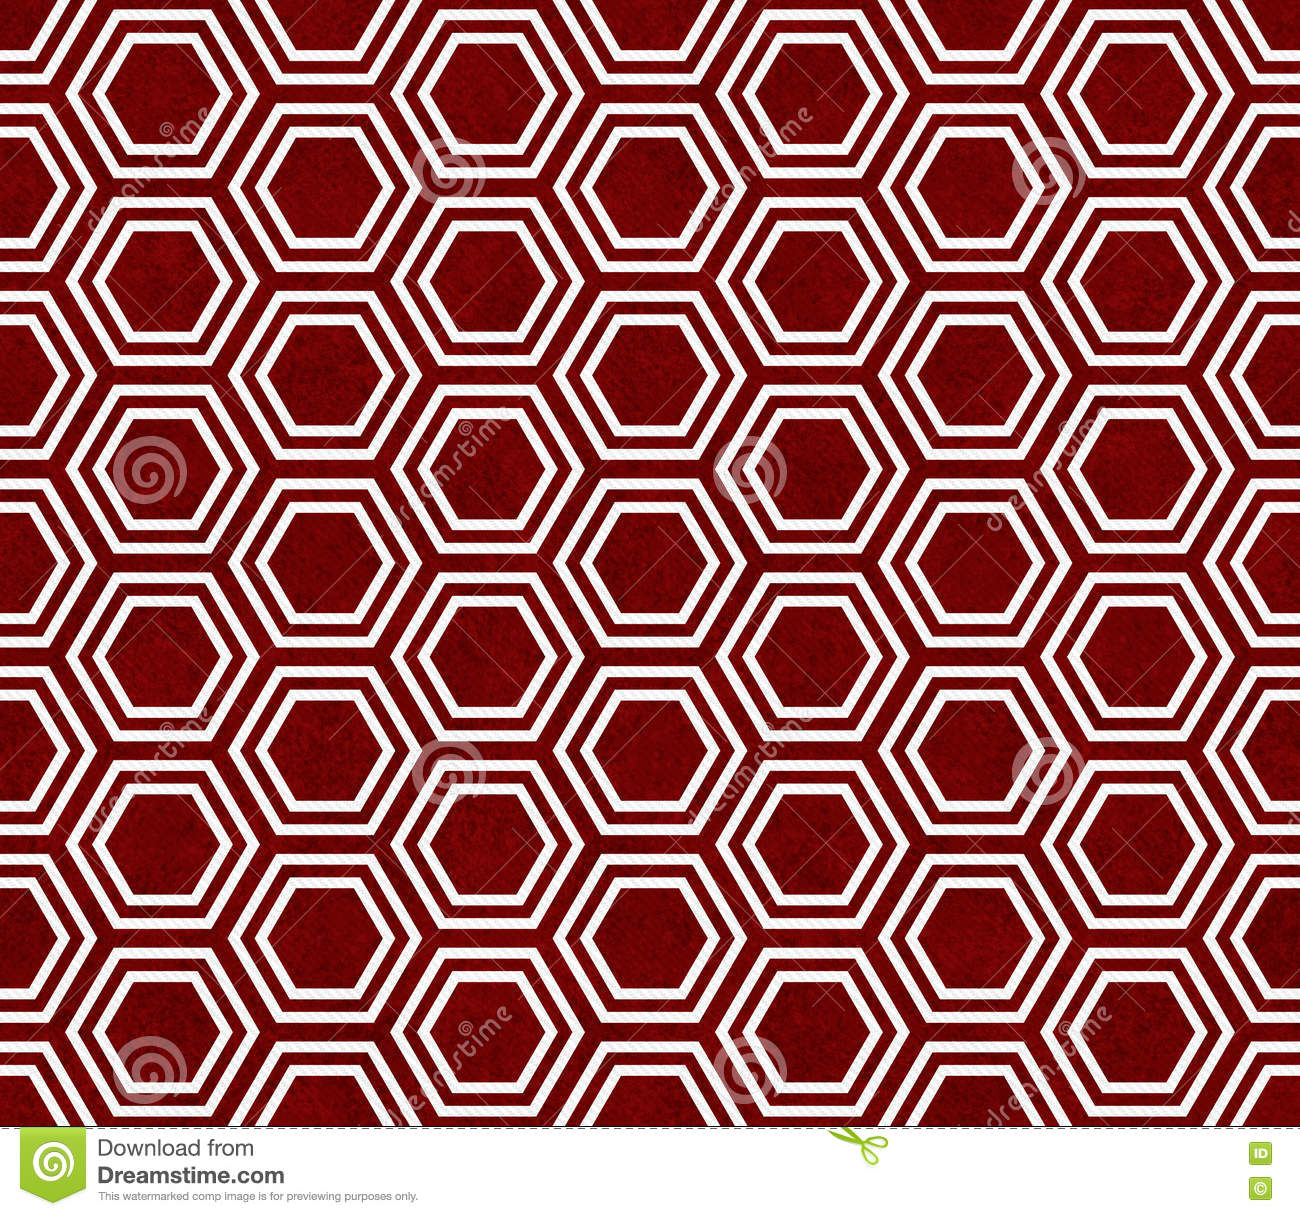 Red And White Hexagon Tile Pattern Repeat Background Stock ... - photo#11